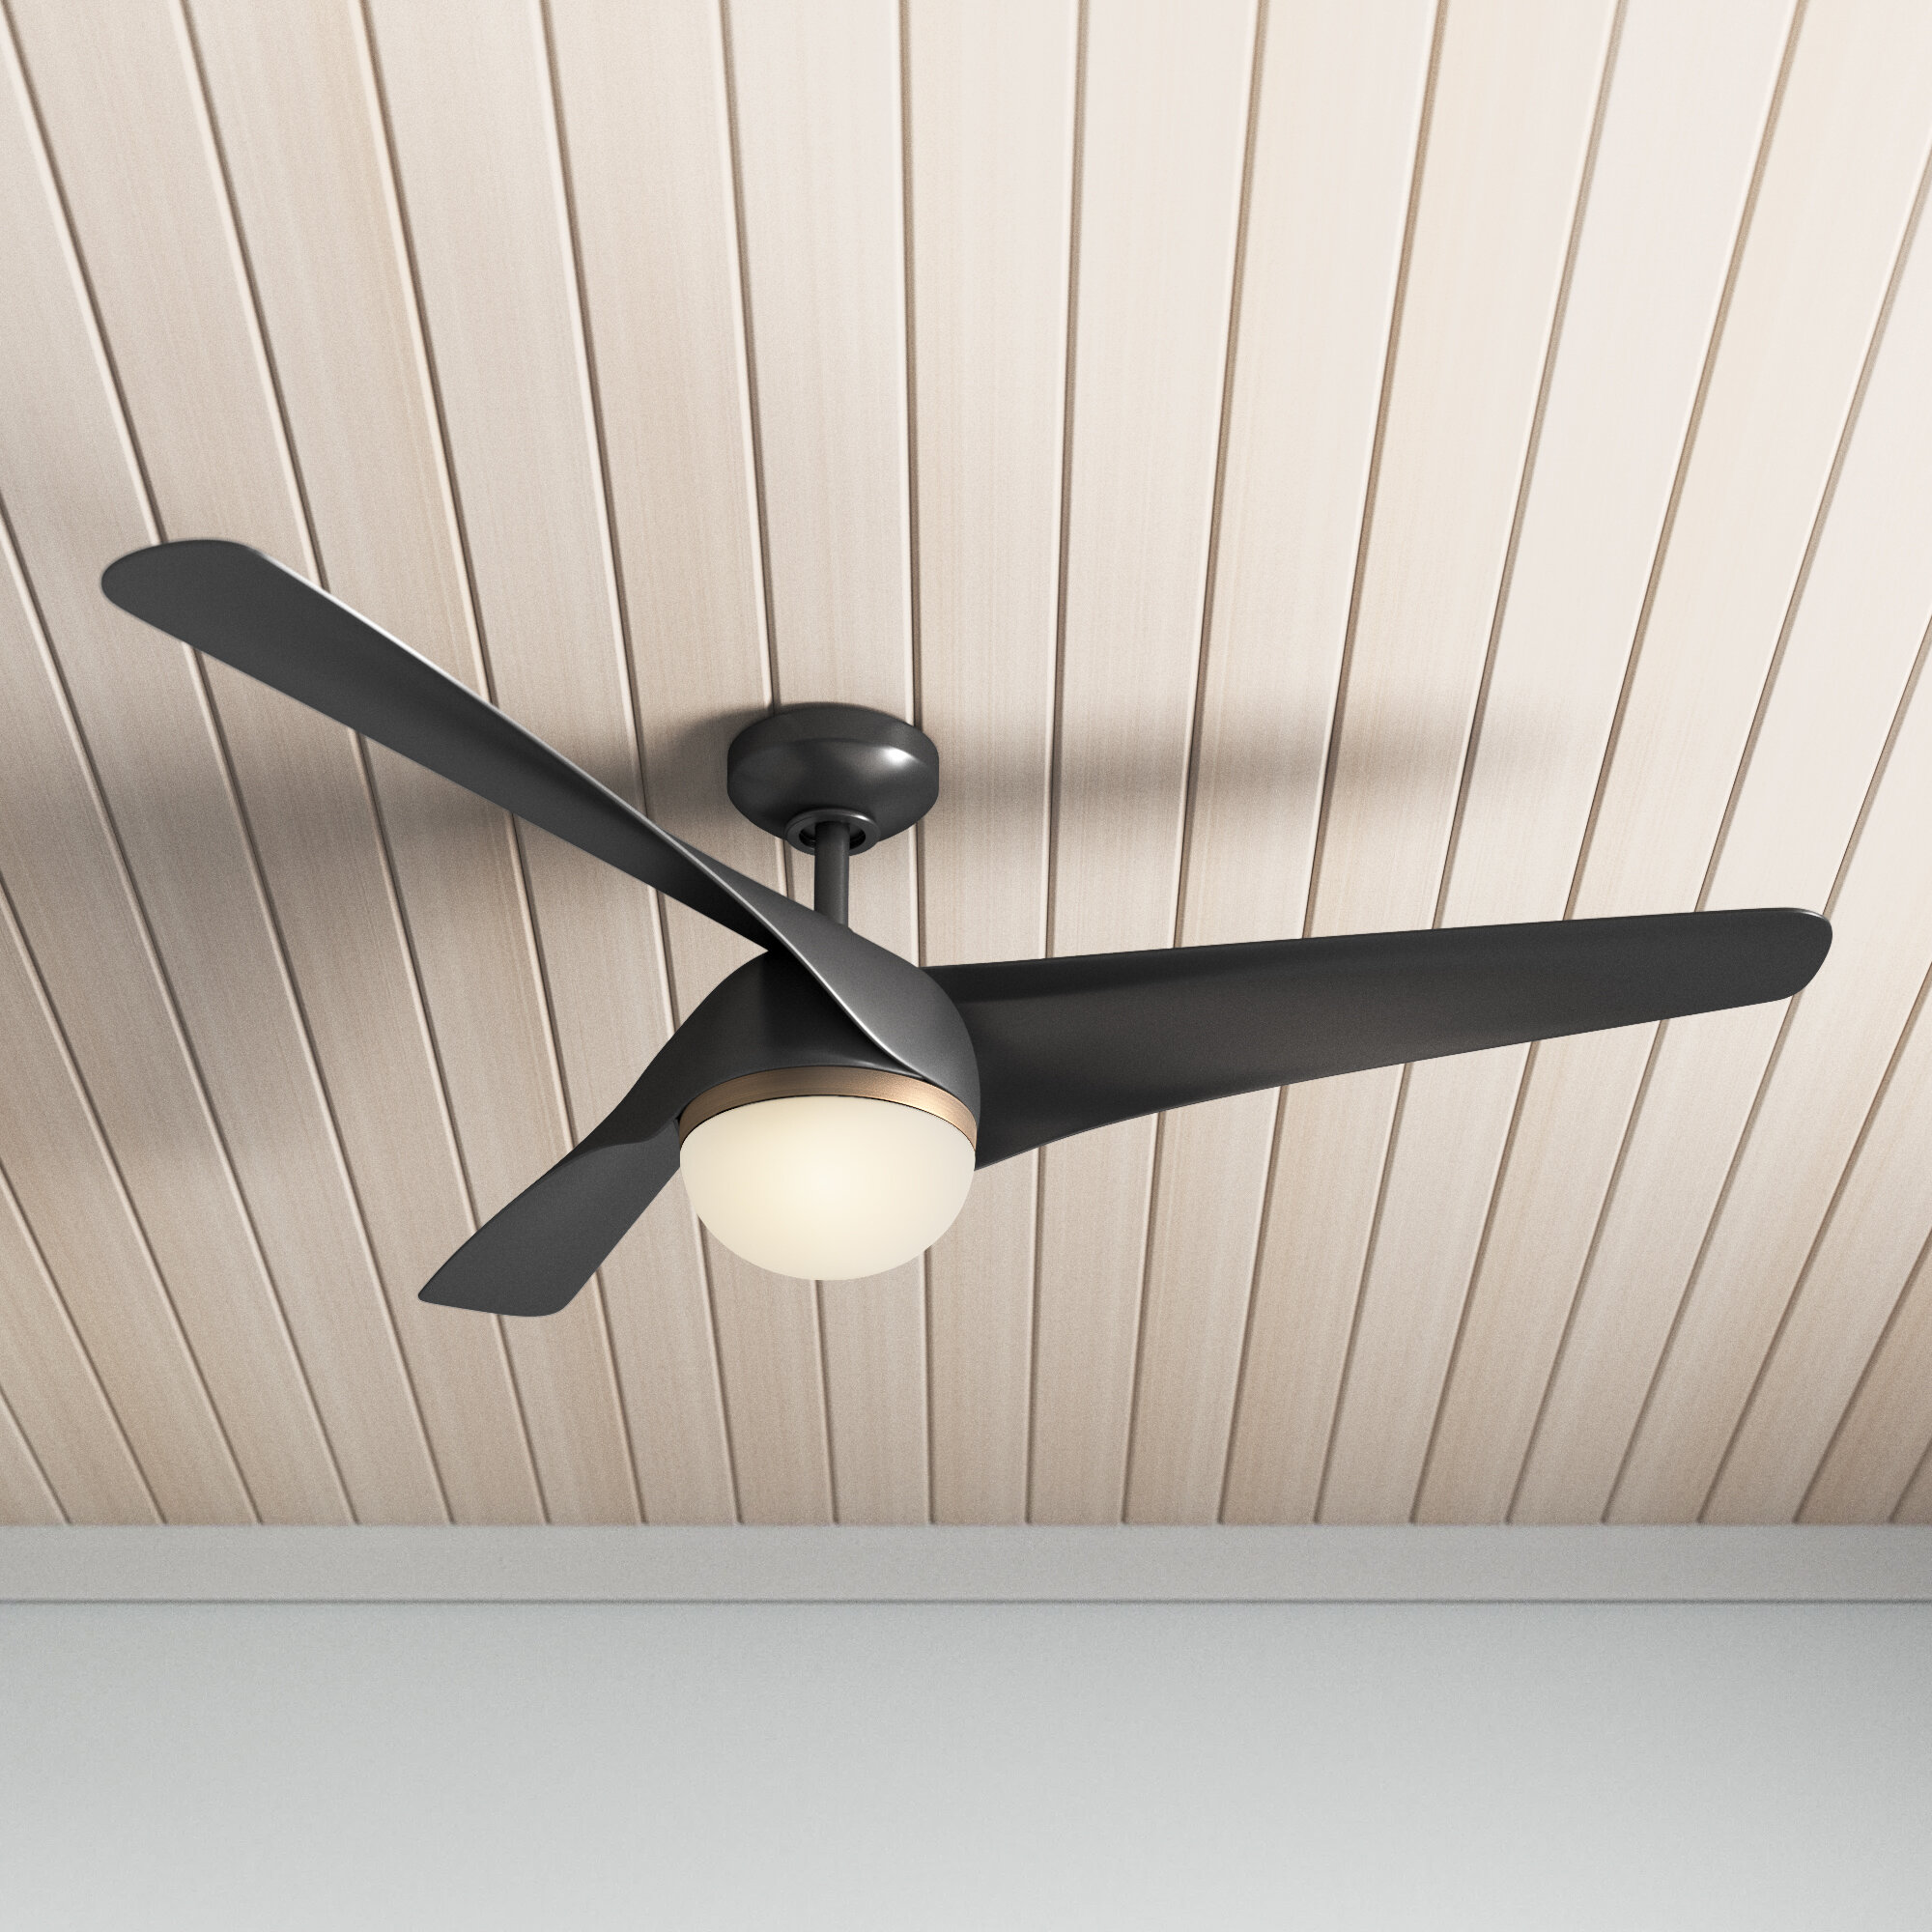 Allmodern 56 Almeida 3 Blade Led Propeller Ceiling Fan With Remote Control And Light Kit Included Reviews Wayfair